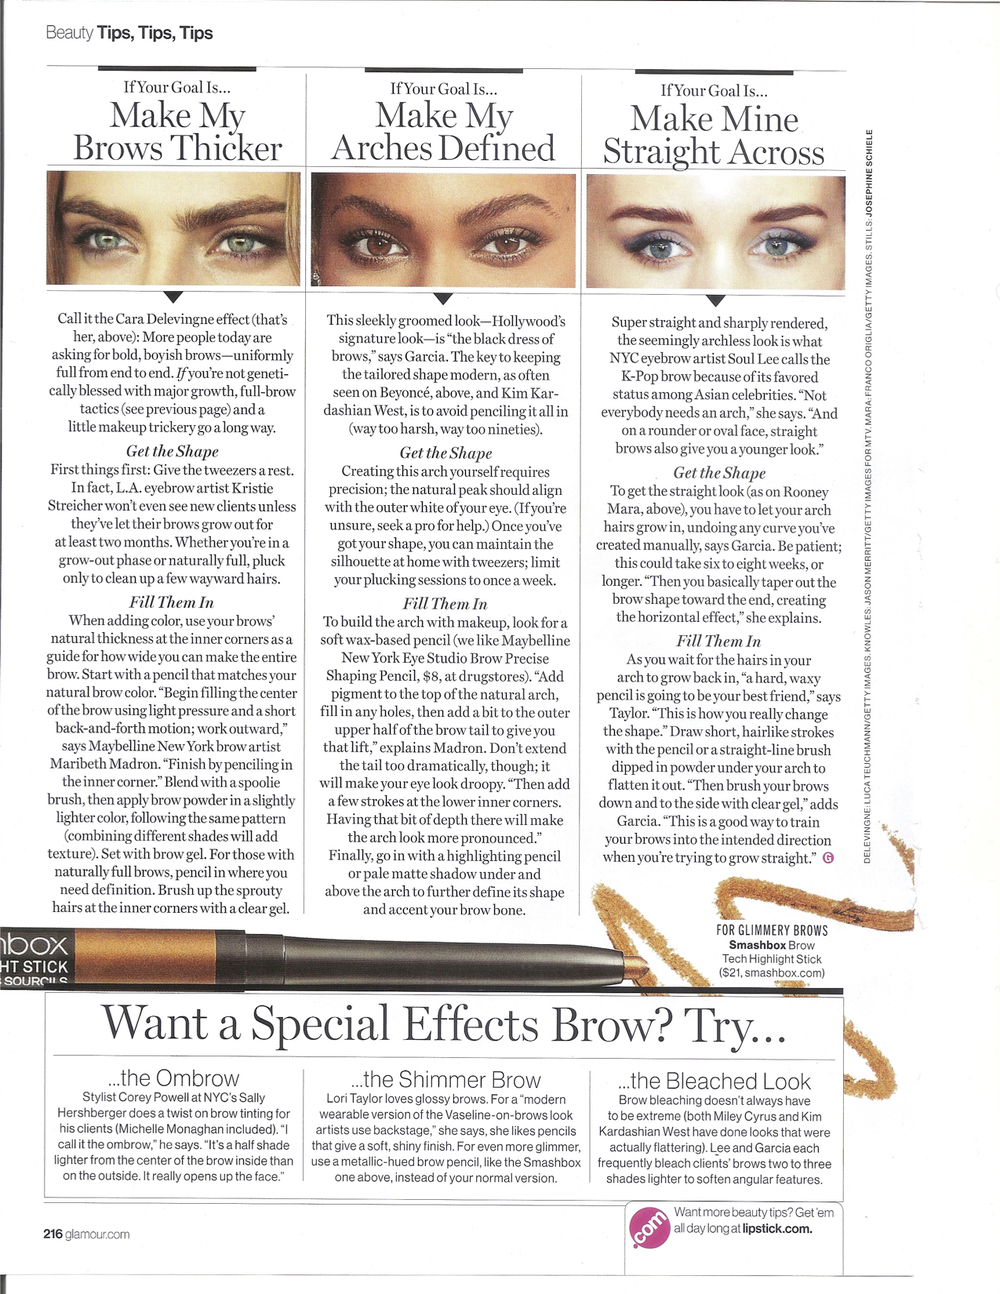 Glamour- Your Best Brows Ever, October 2015 pg3.jpg